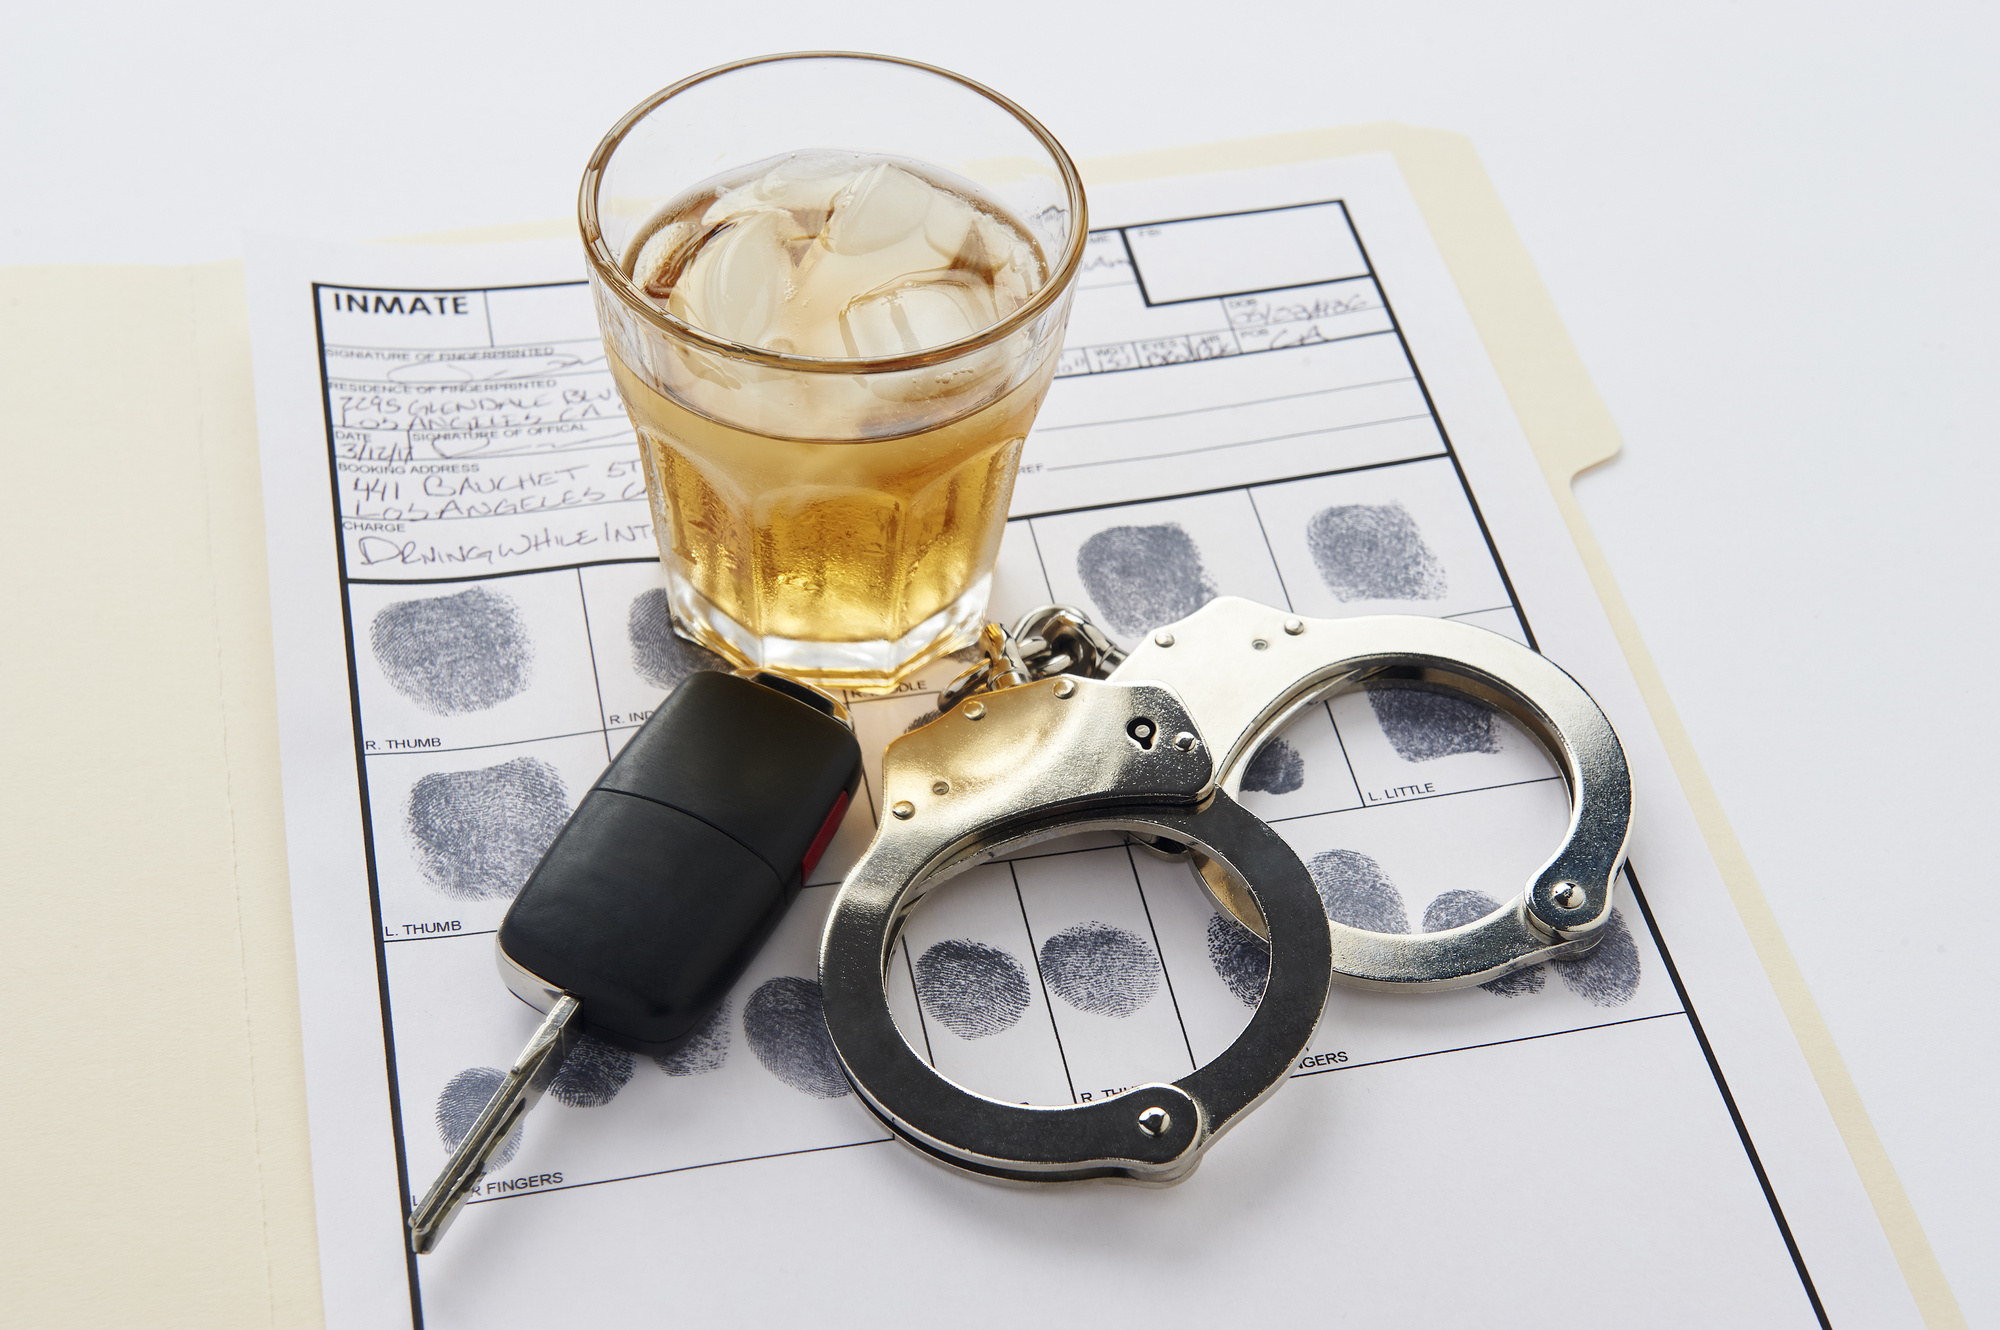 Help! Is It Possible to Expunge a DWI Conviction?